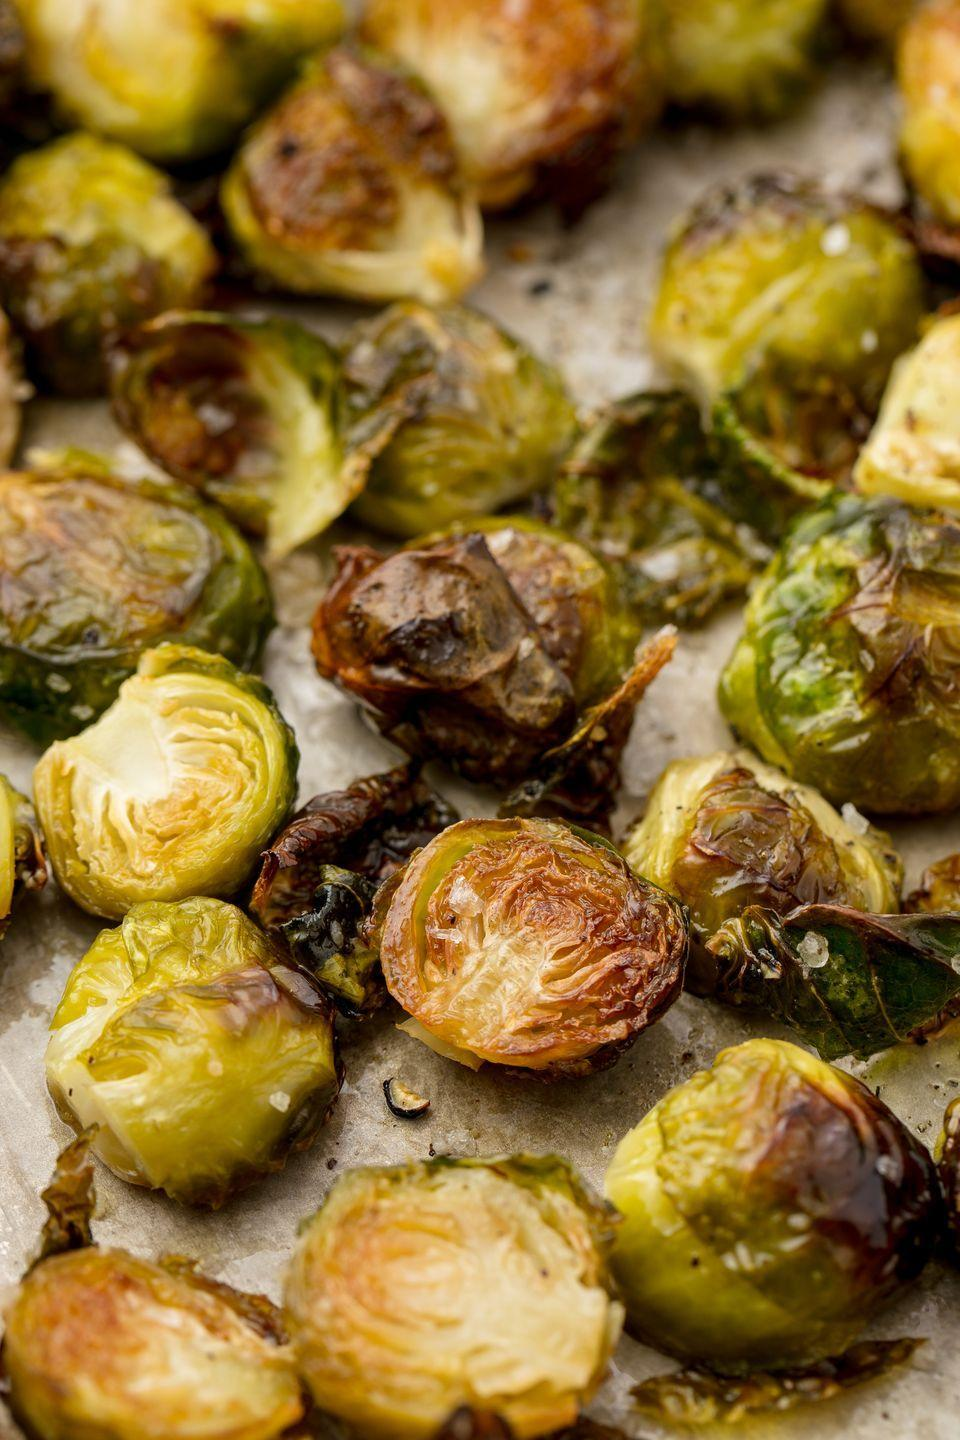 "<p>There is nothing more perfect than roasted brussels sprouts.</p><p>Get the recipe from <a href=""https://www.delish.com/cooking/recipe-ideas/recipes/a55335/best-roasted-brussel-sprouts-recipe/"" rel=""nofollow noopener"" target=""_blank"" data-ylk=""slk:Delish"" class=""link rapid-noclick-resp"">Delish</a>.</p>"